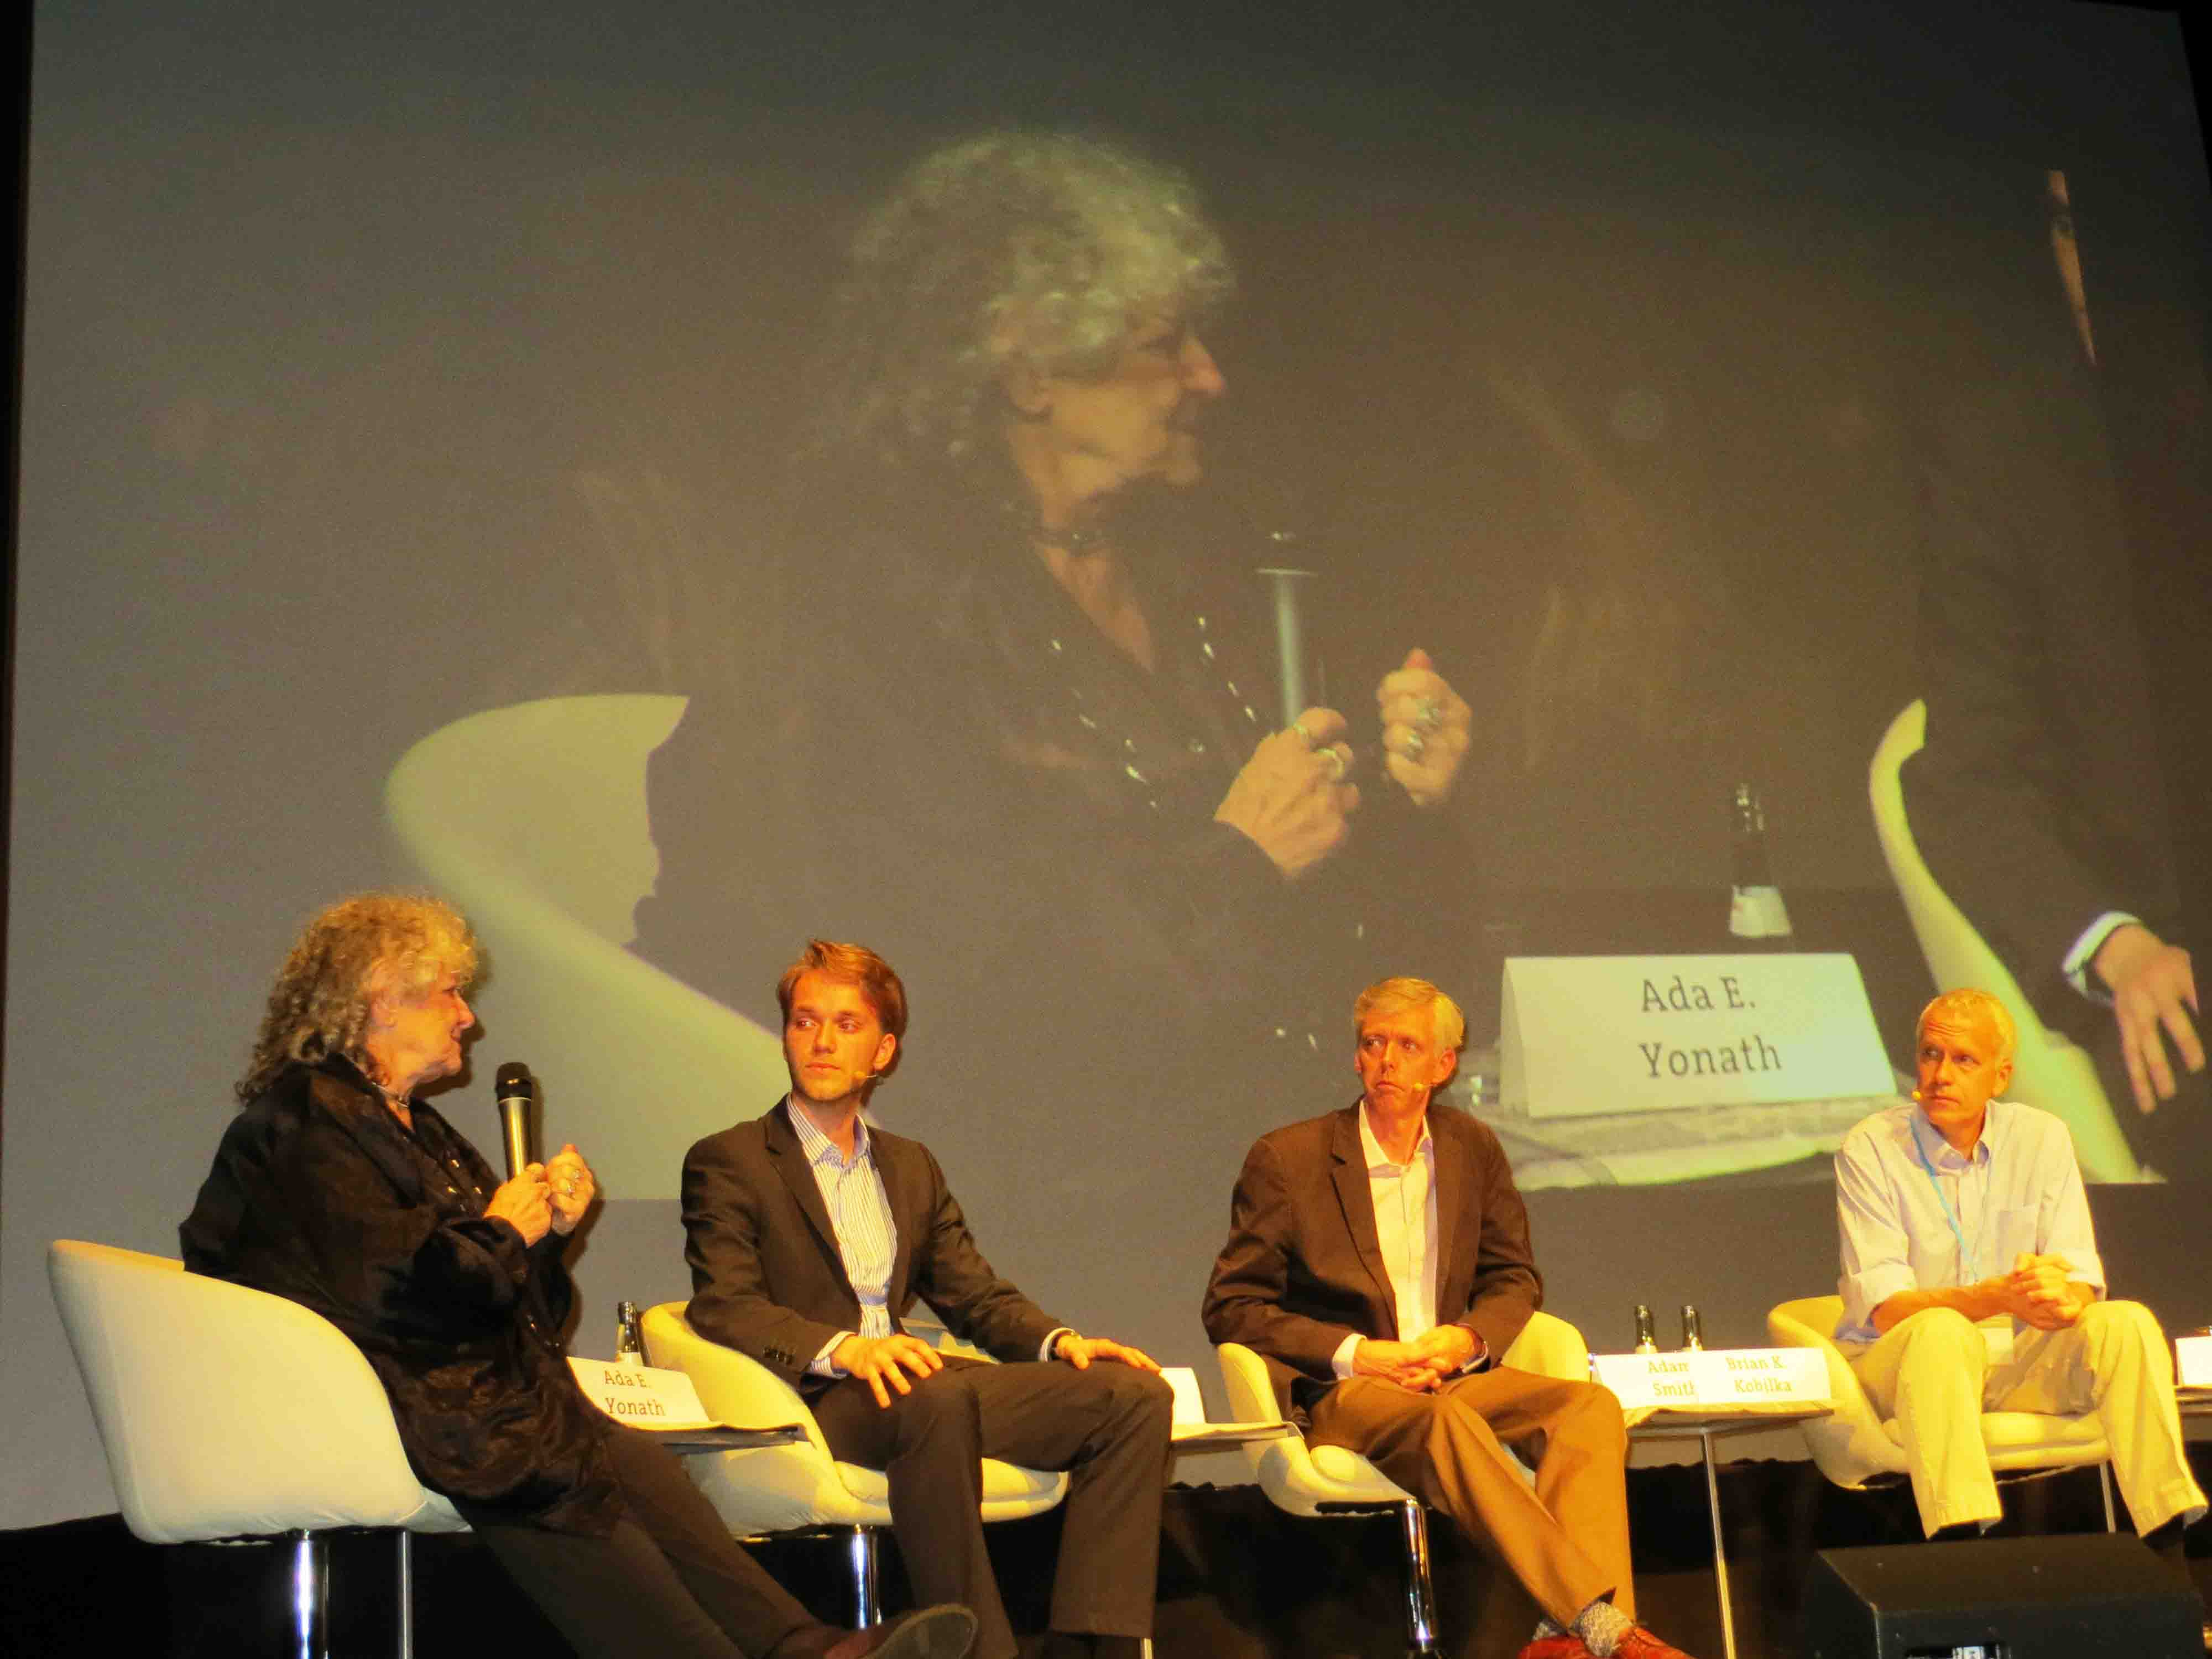 A panel of Nobel Laureates and scientists discusses the importance of communication in science. Speaking in this photo is Ada Yonath (far left), who won the Nobel Prize for Chemistry in 2009 for her studies on the structure and function of the ribosome.